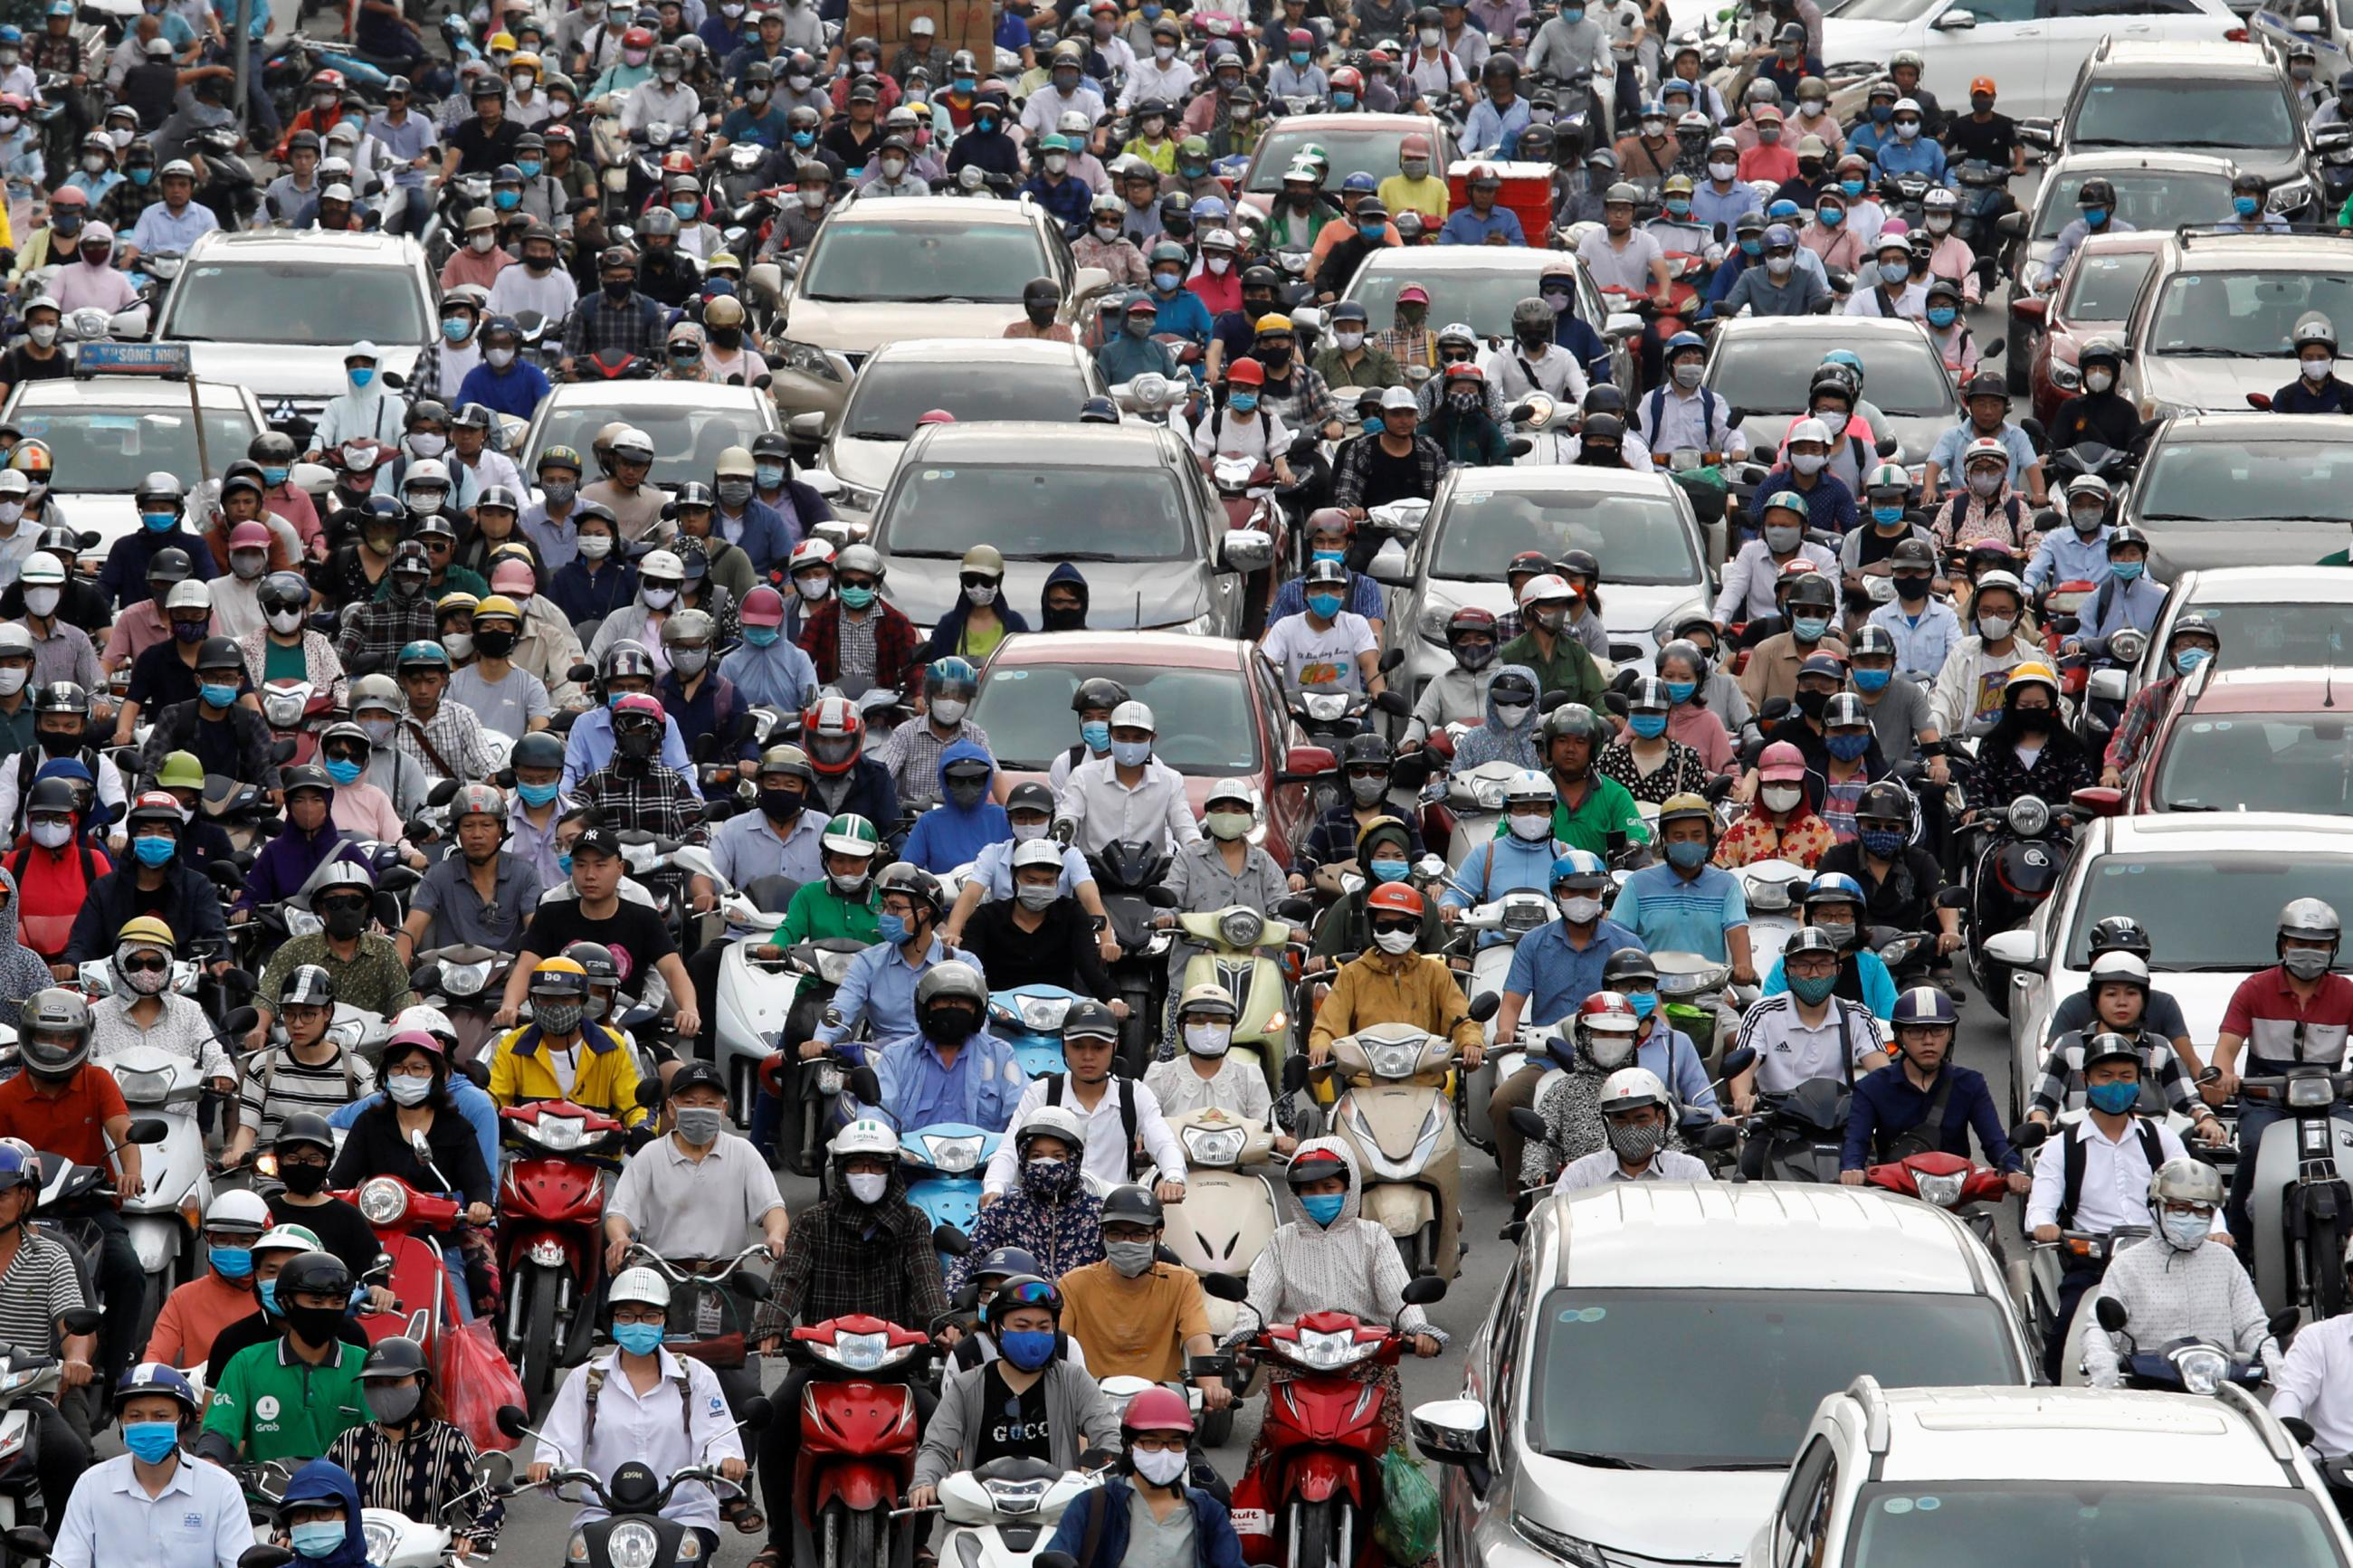 Traffic jam is seen in morning rush hour after the government eased nationwide lockdown following the coronavirus disease (COVID-19) outbreak in Hanoi, Vietnam May 25, 2020.